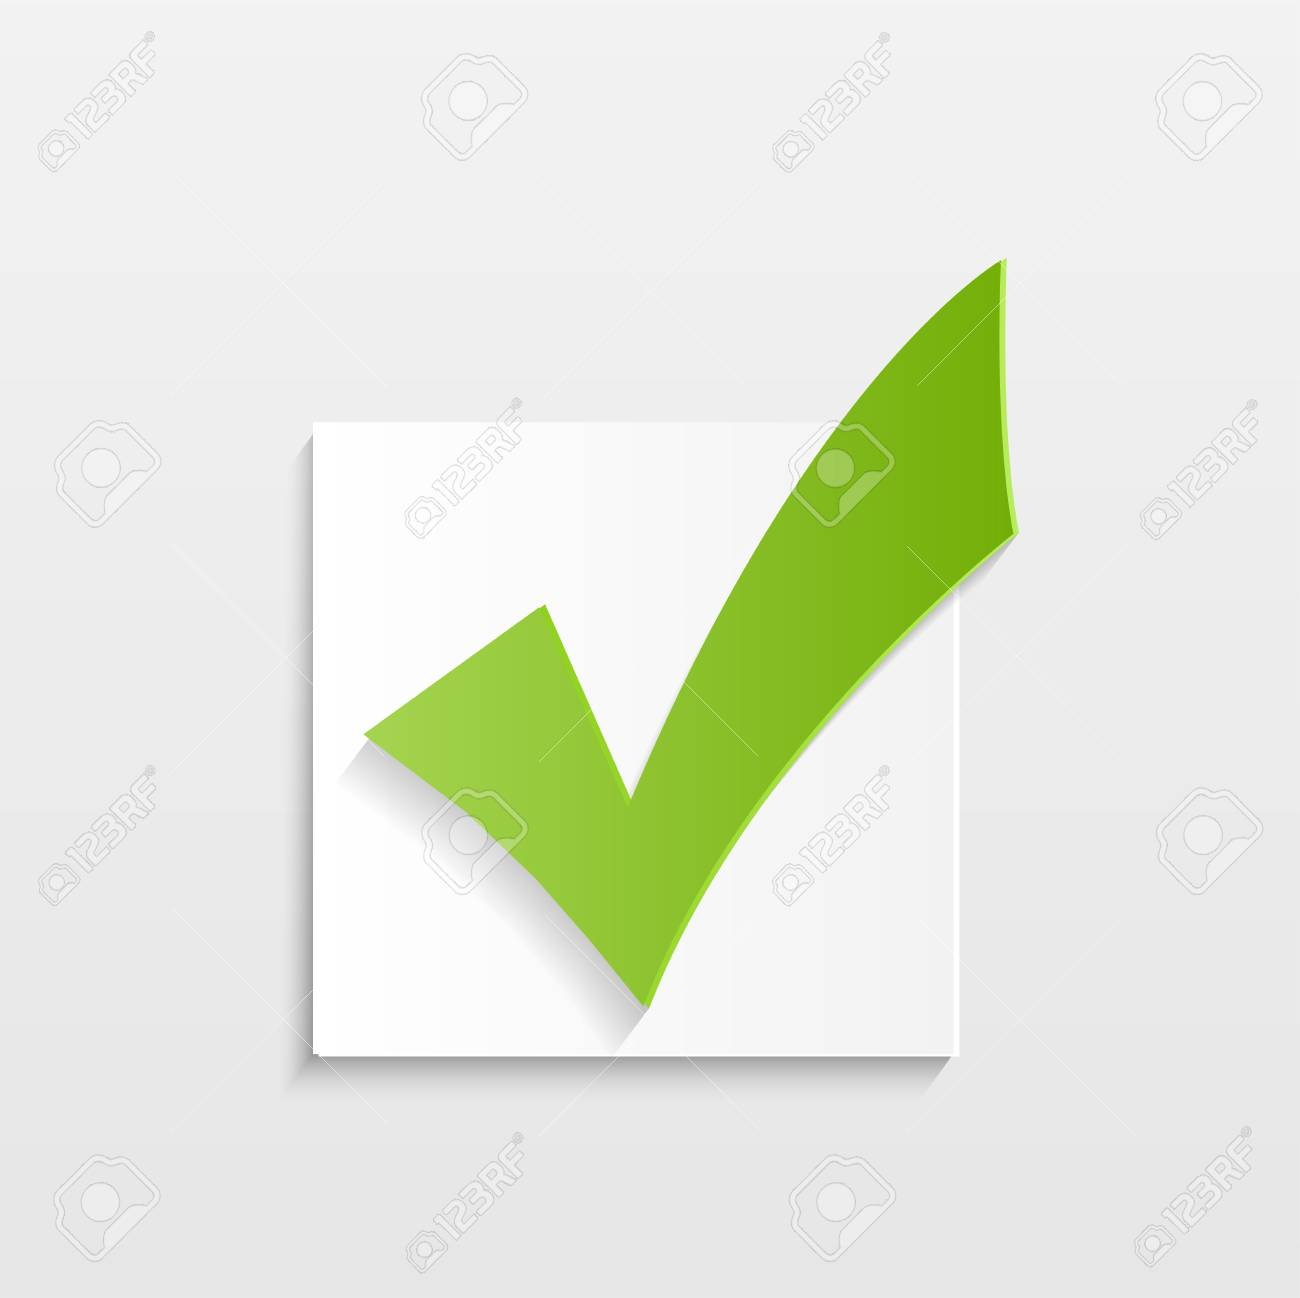 Illustration of a check mark isolated on a white background. - 97016351